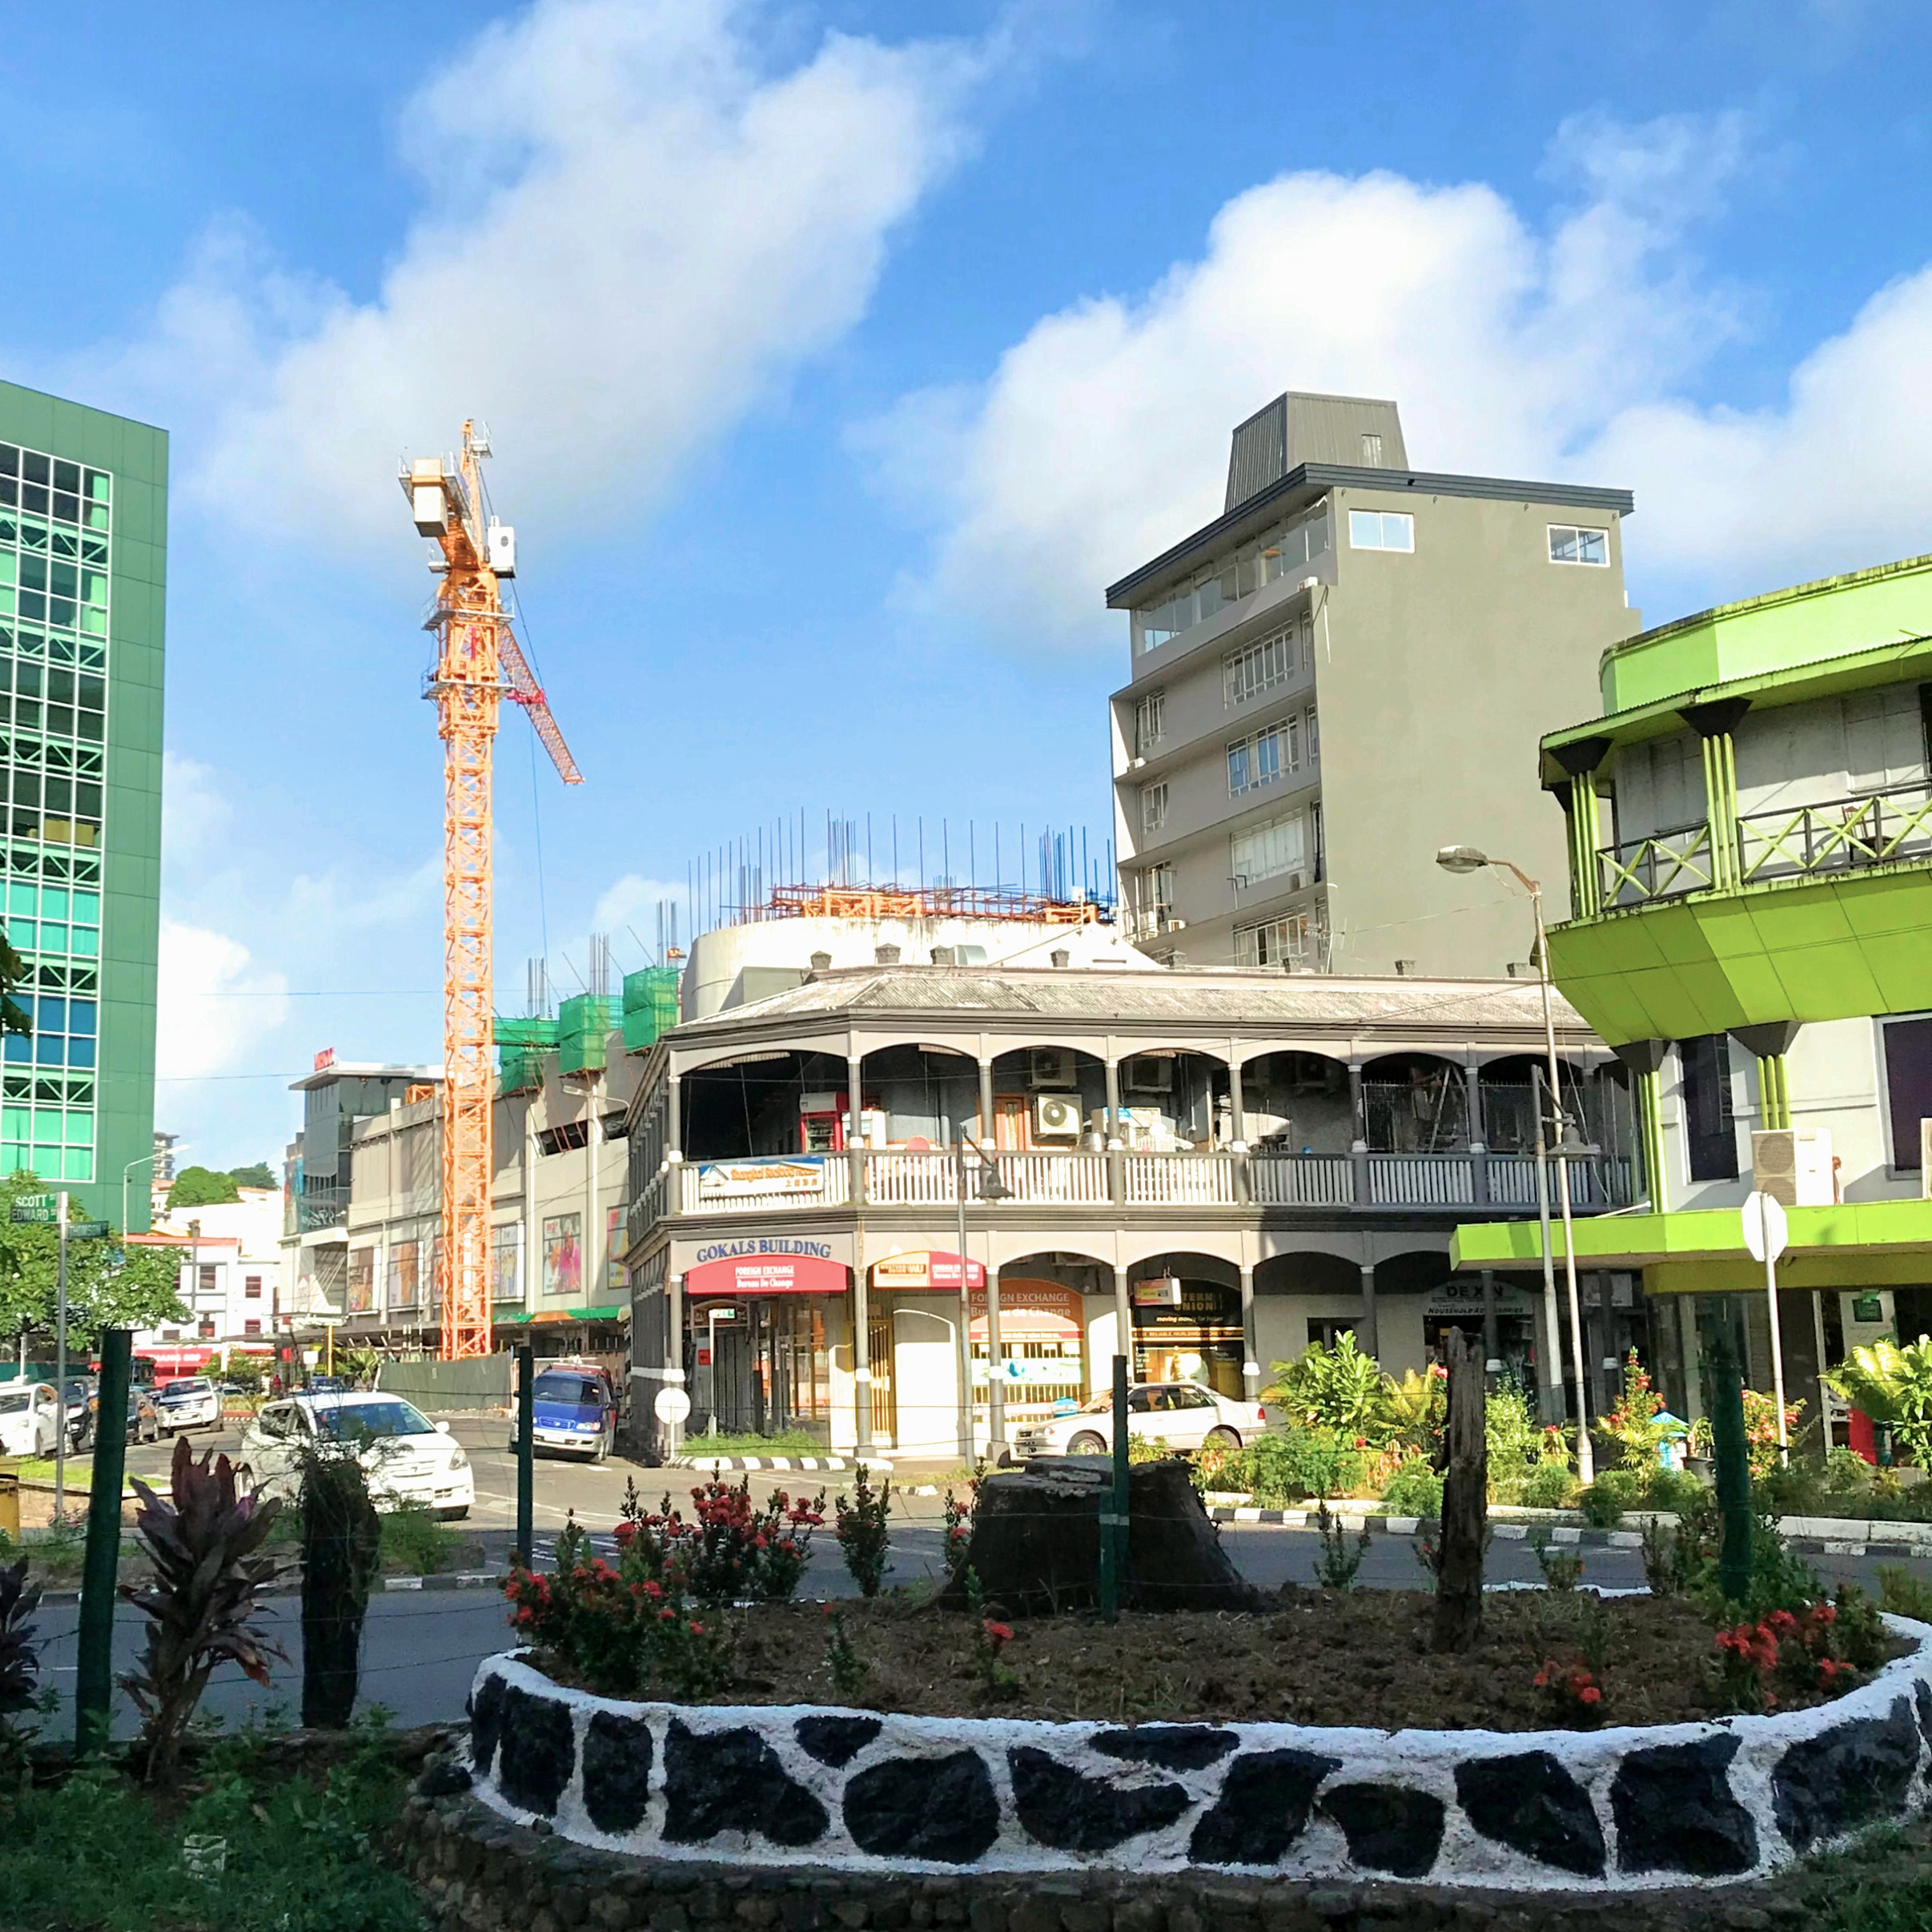 The crane is up at the MHCC Shopping Centre in Suva, Fiji, ready for construction of the new Carpenters Tower.